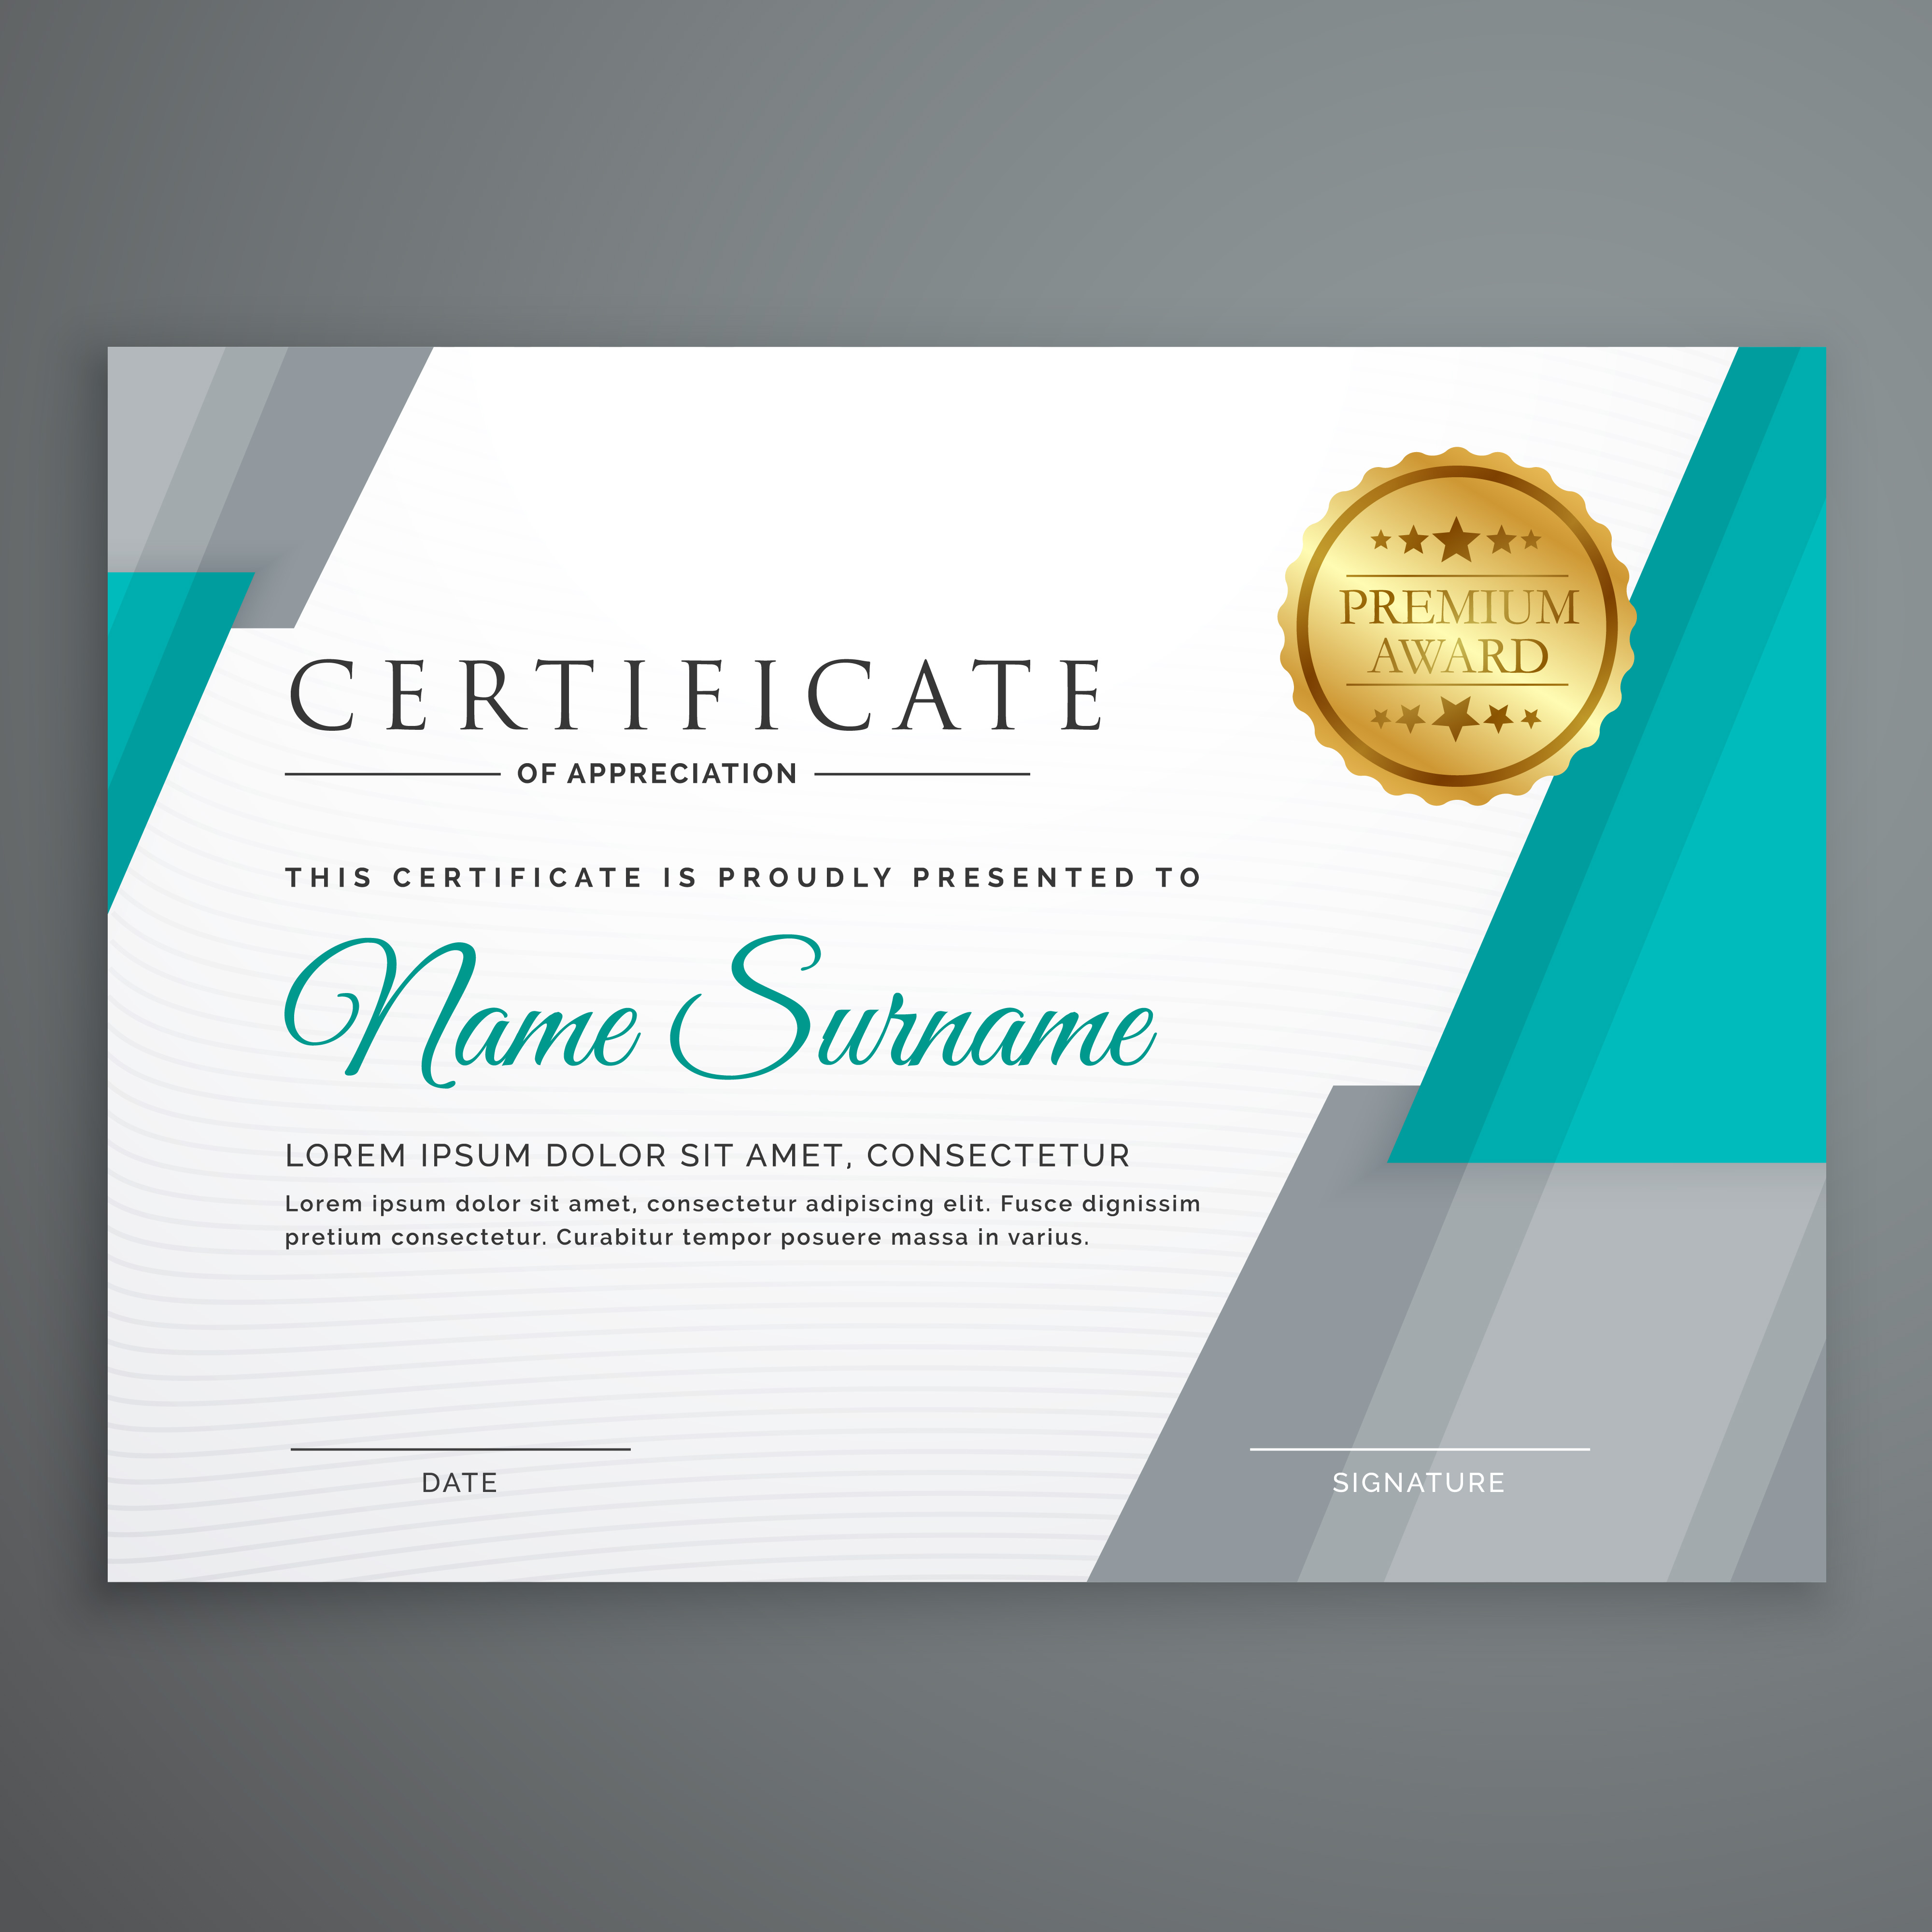 stylish certificate template design with geometric shapes - Download ...